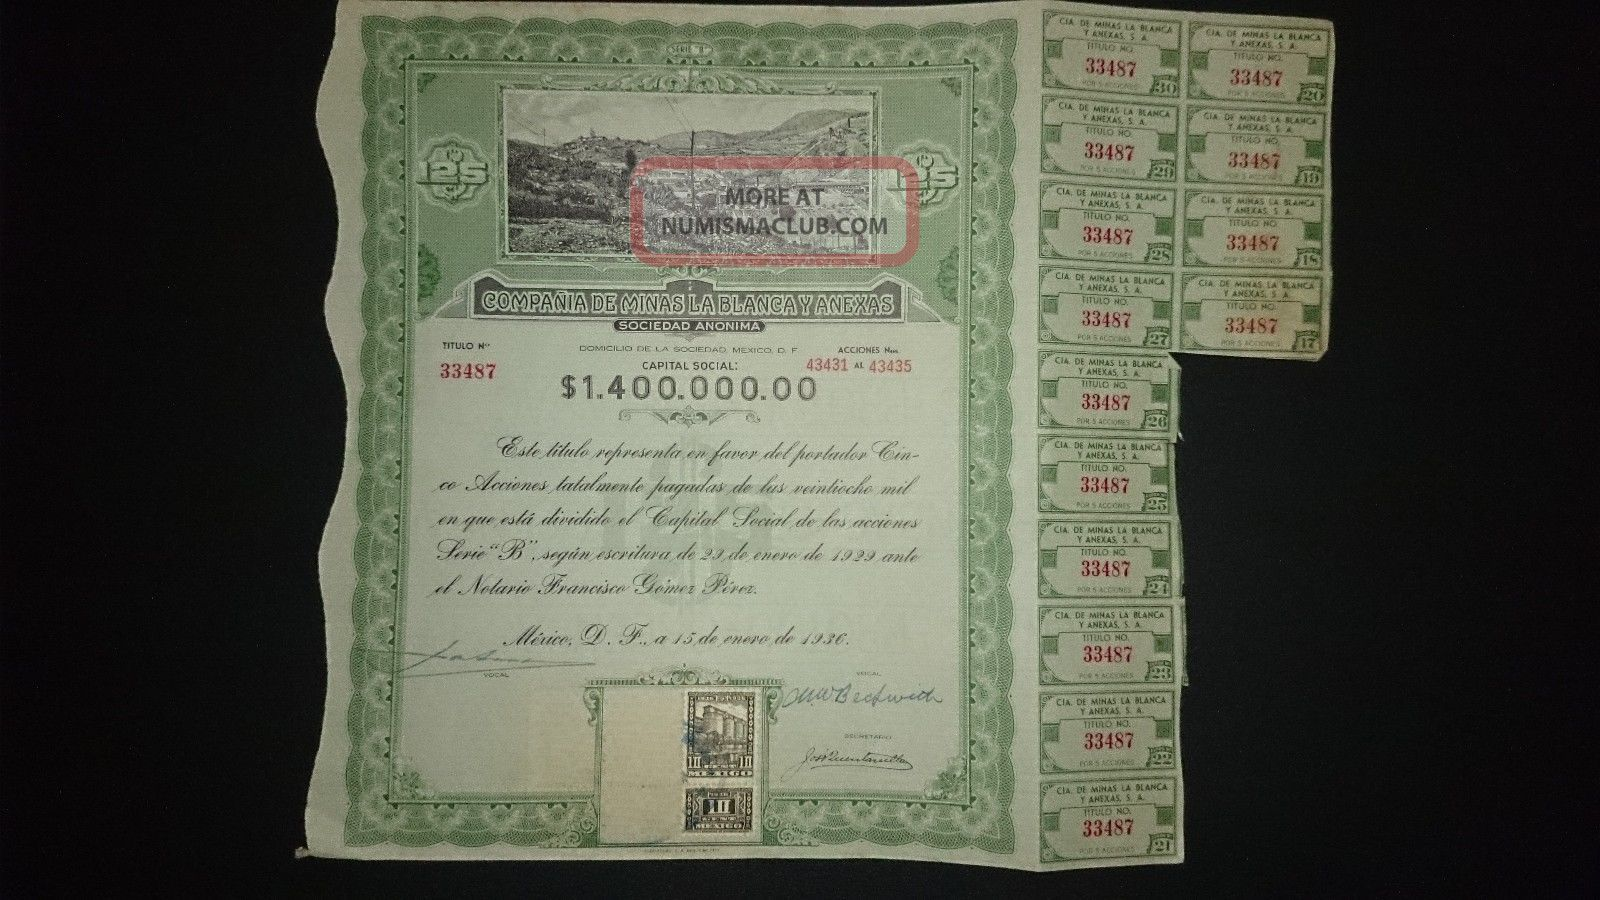 CompaÑia De Minas La Blanca Y Anexas.  Title Of 5 Shares.  Mexico 1936 Stocks & Bonds, Scripophily photo